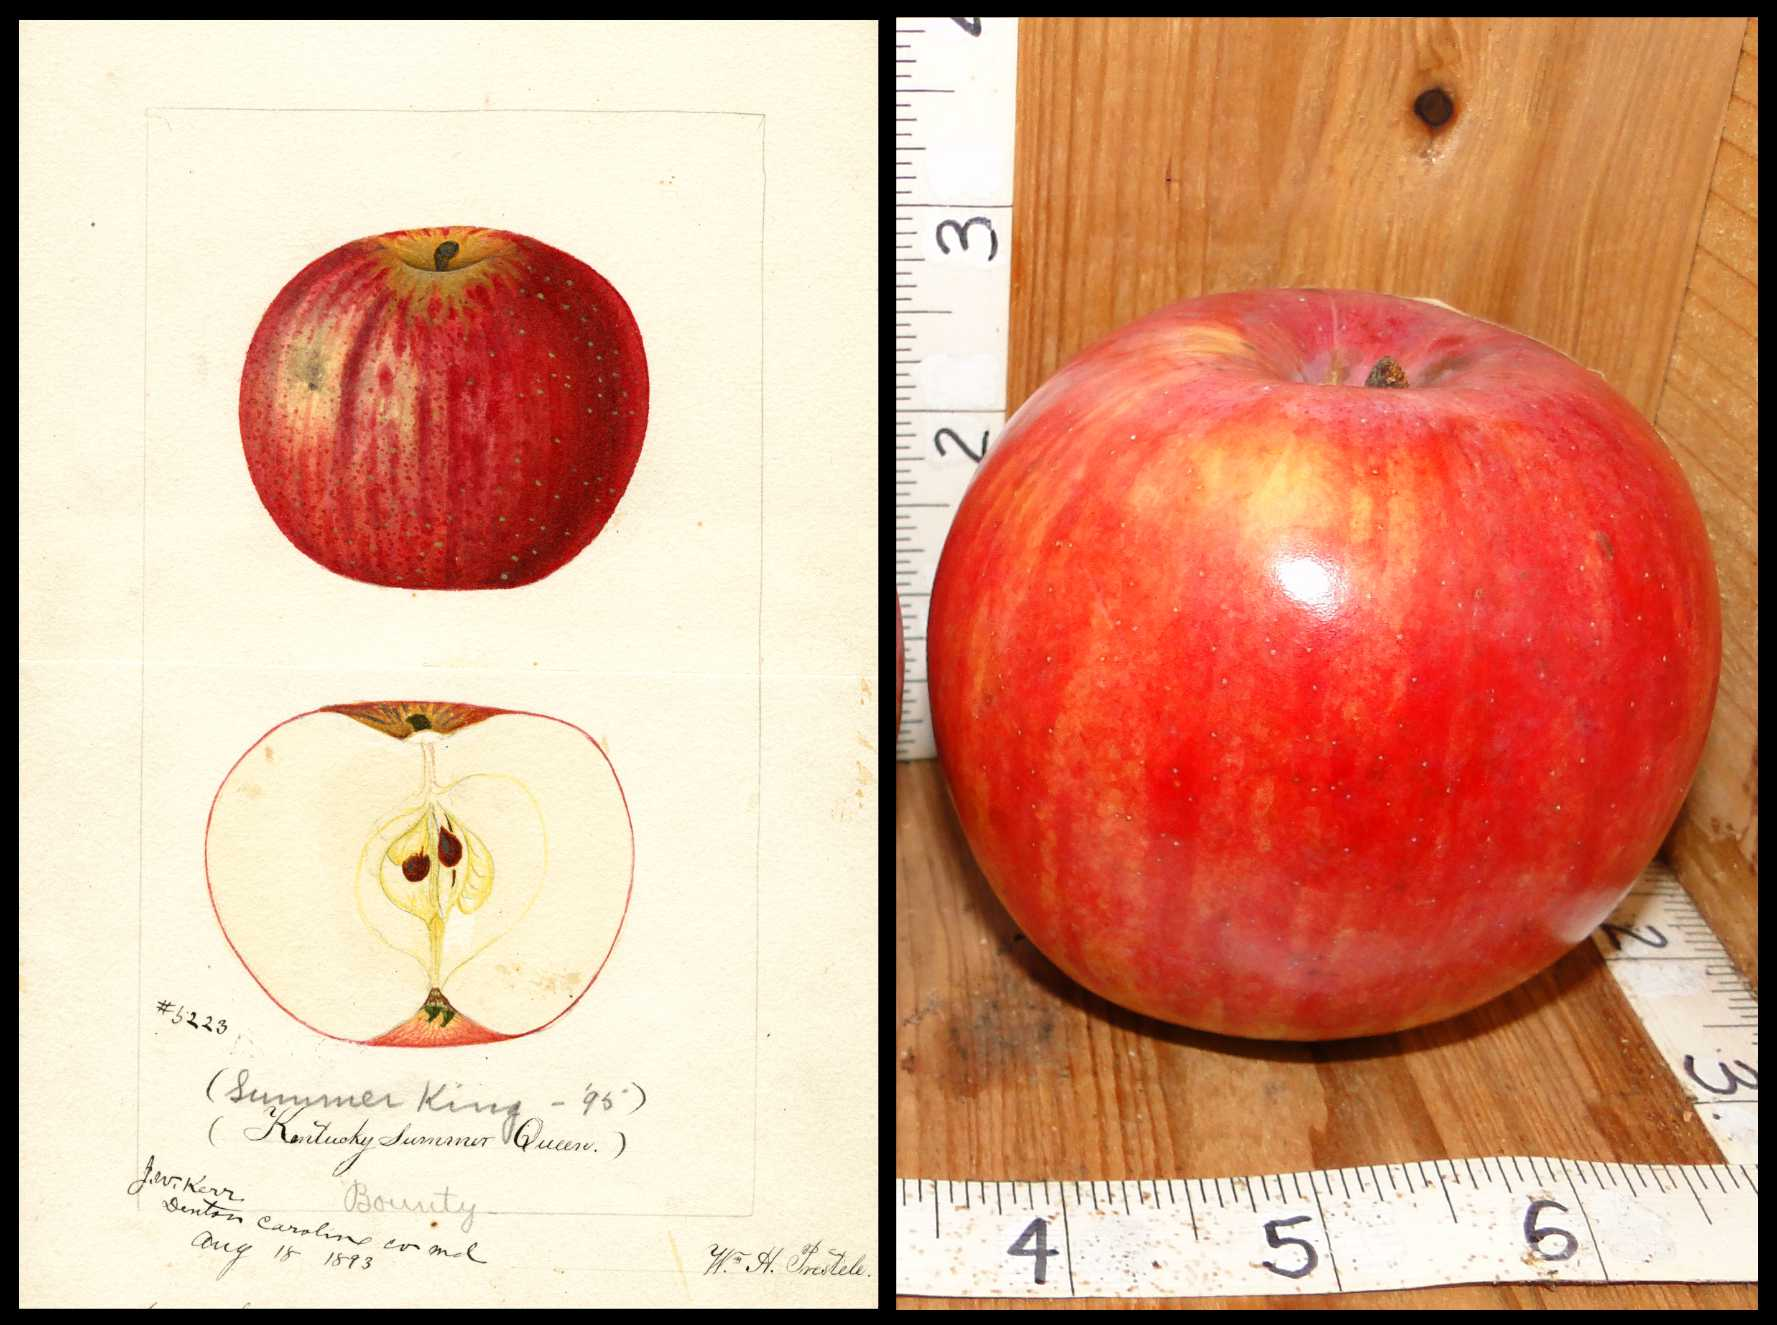 shiny red apple with small patches of yellow